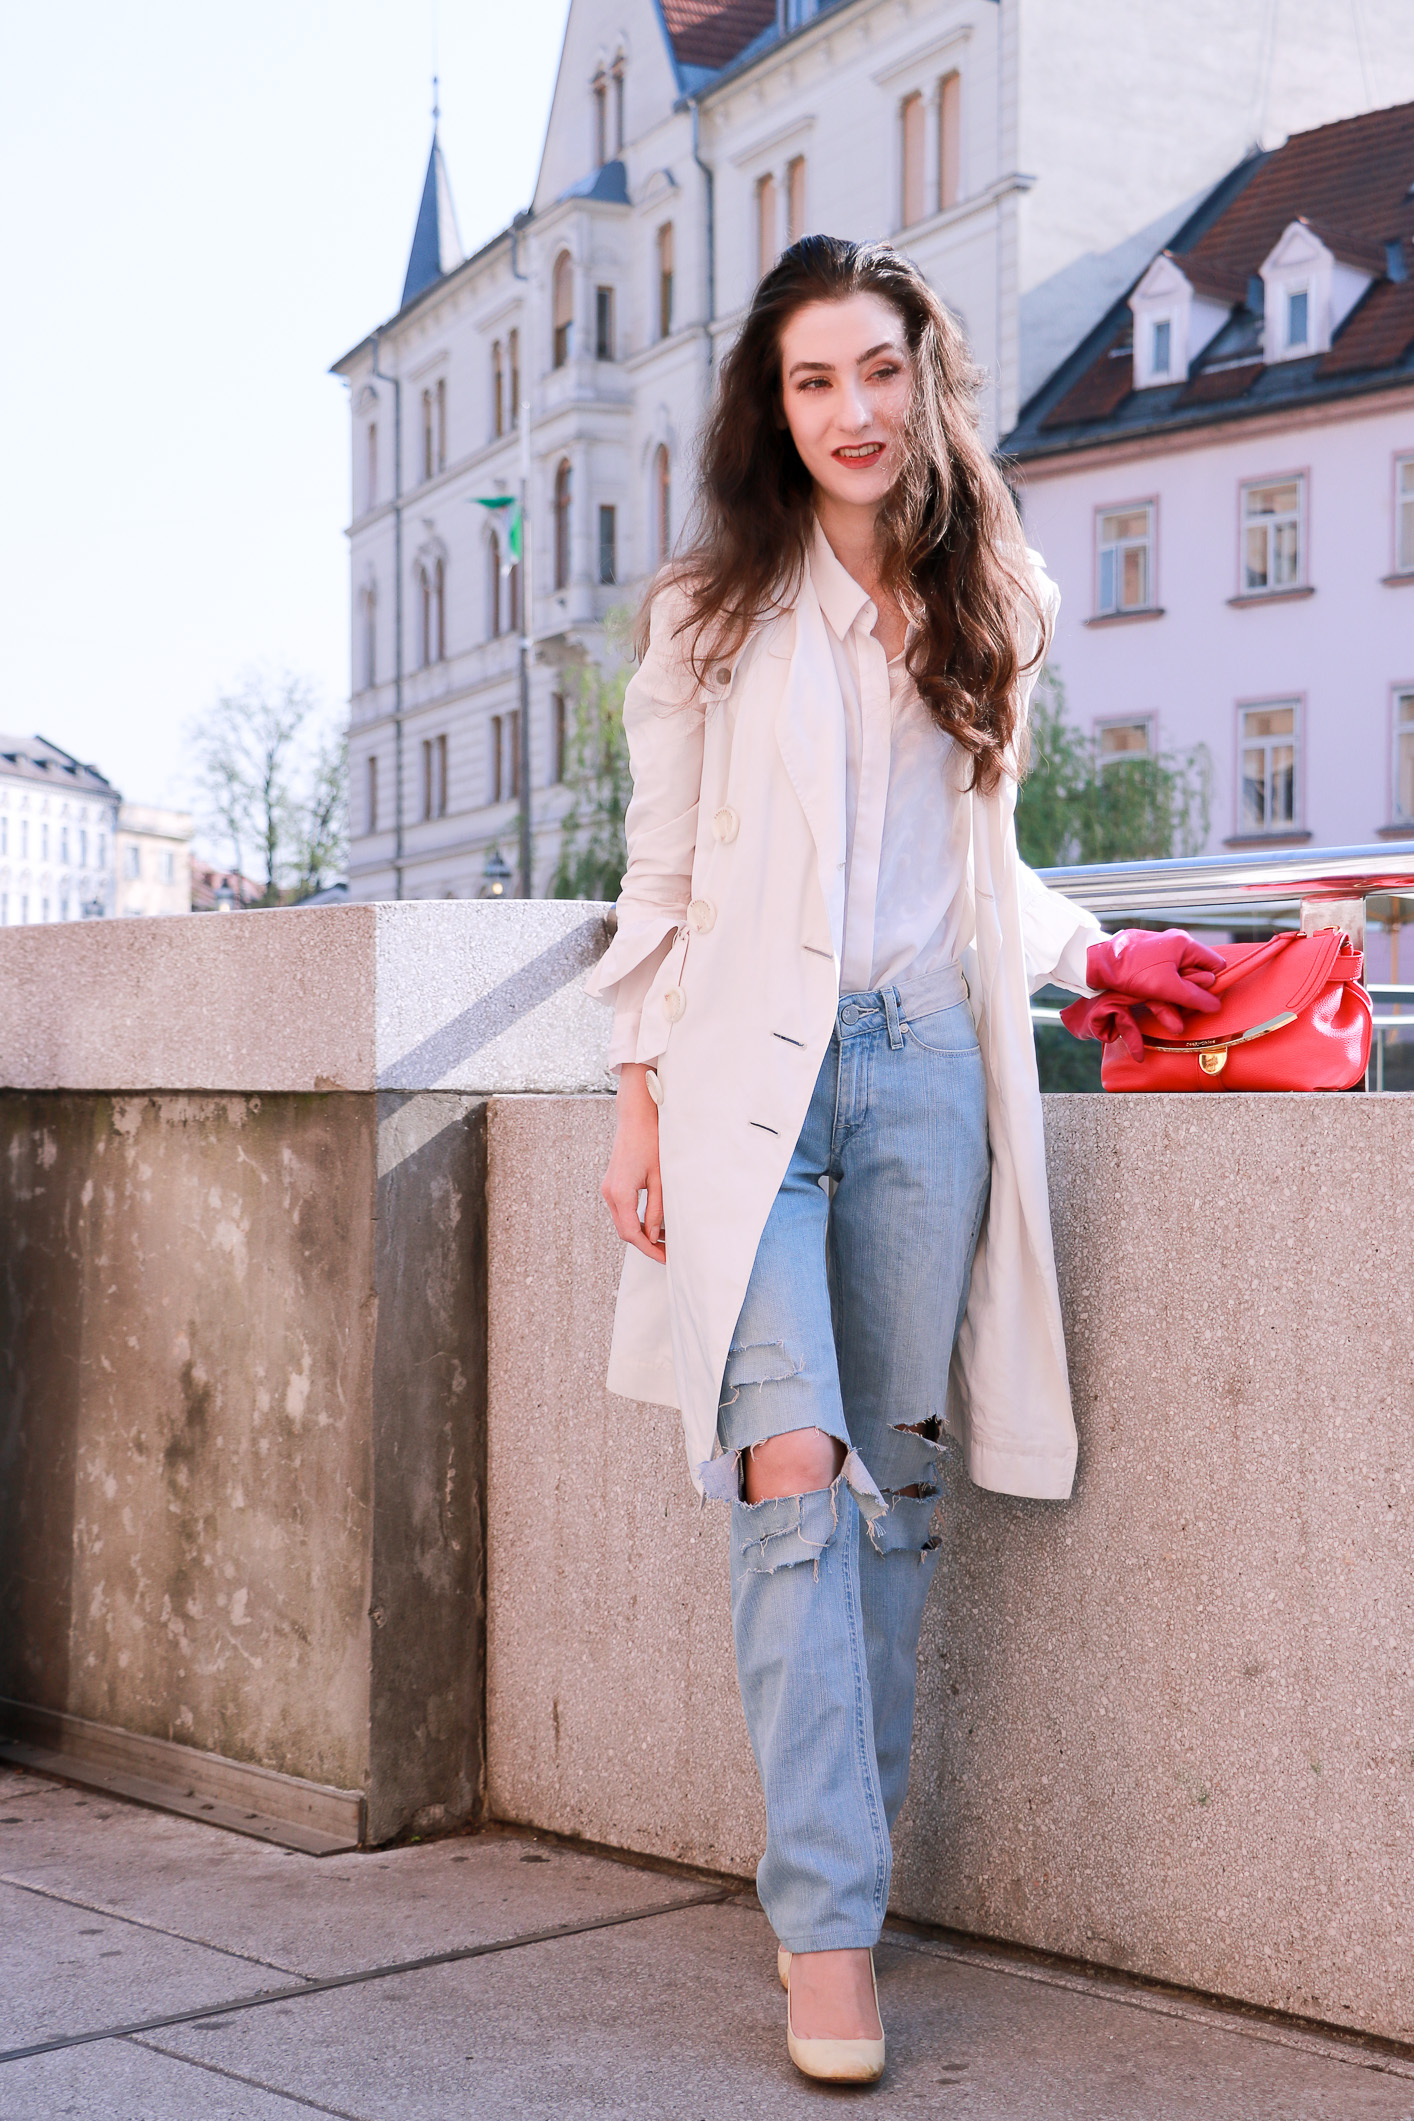 Fashion blogger Veronika Lipar of Brunette From Wall Street sharing how to style white heels and ripped jeans